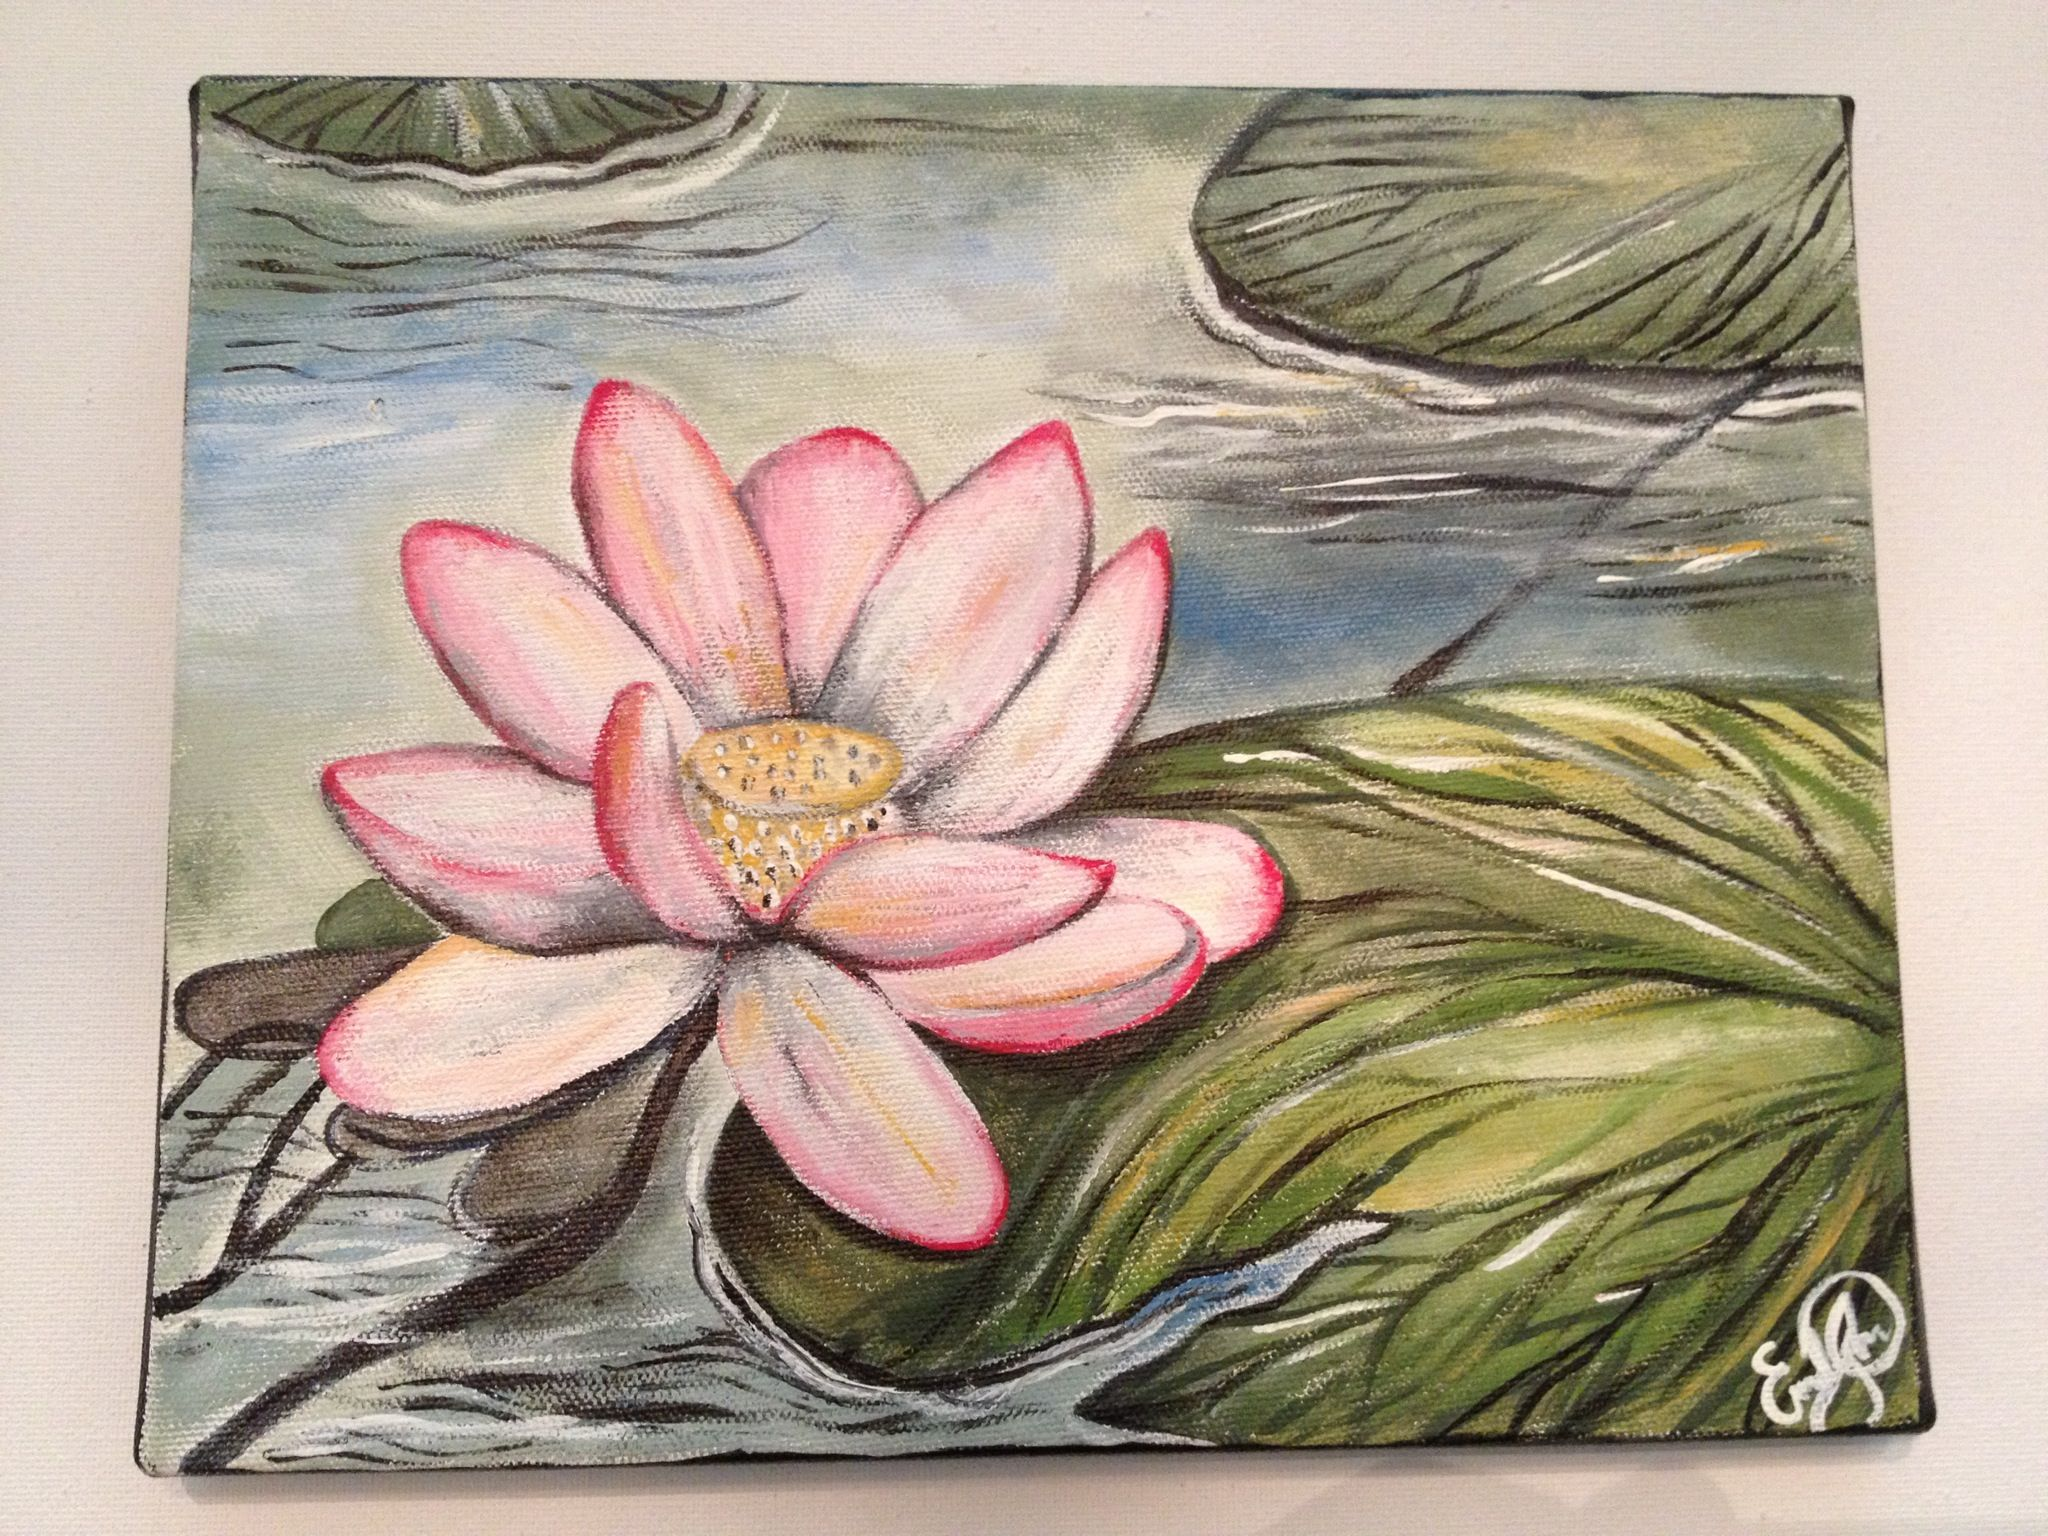 Lotus Flower And Lily Pads By Emily Doerr My Painting For Sale On